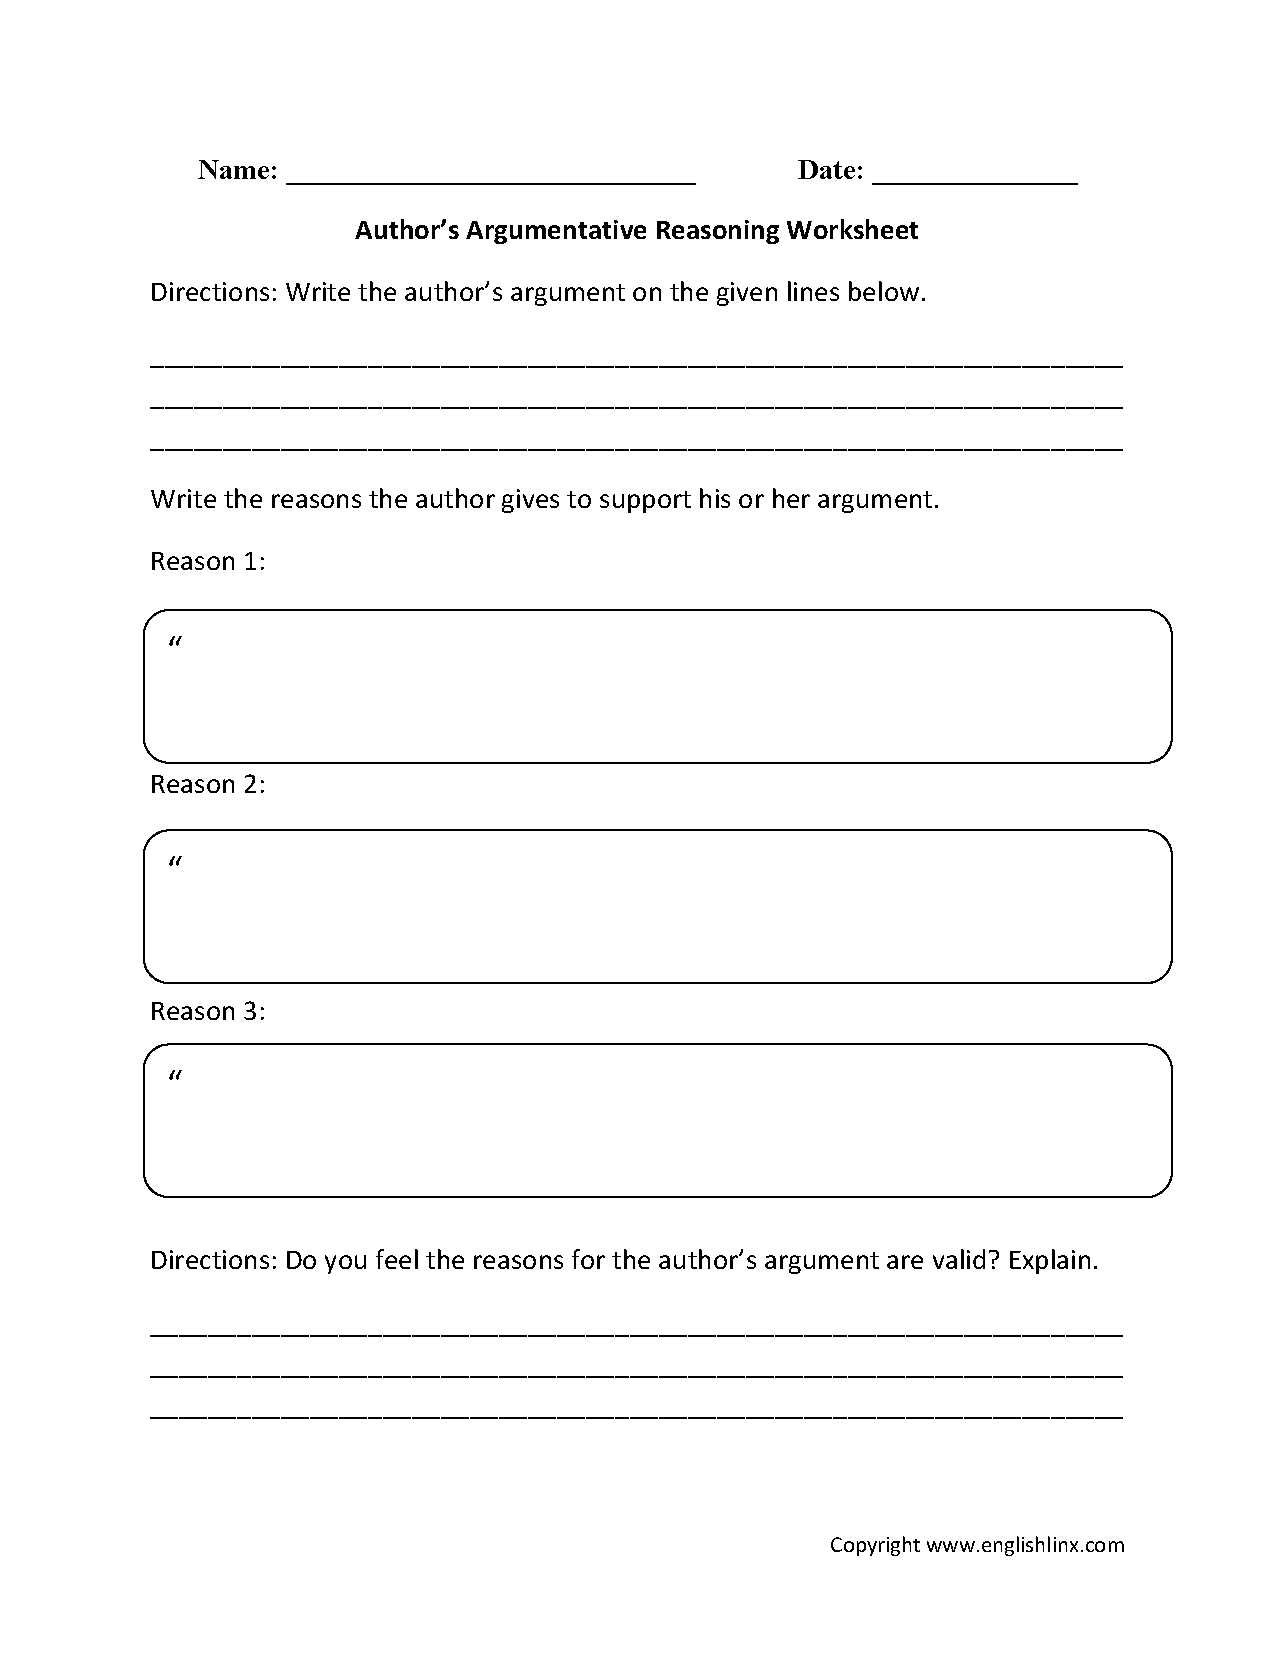 Worksheets Sentence Comprehension Worksheets englishlinx com reading comprehension worksheets worksheets